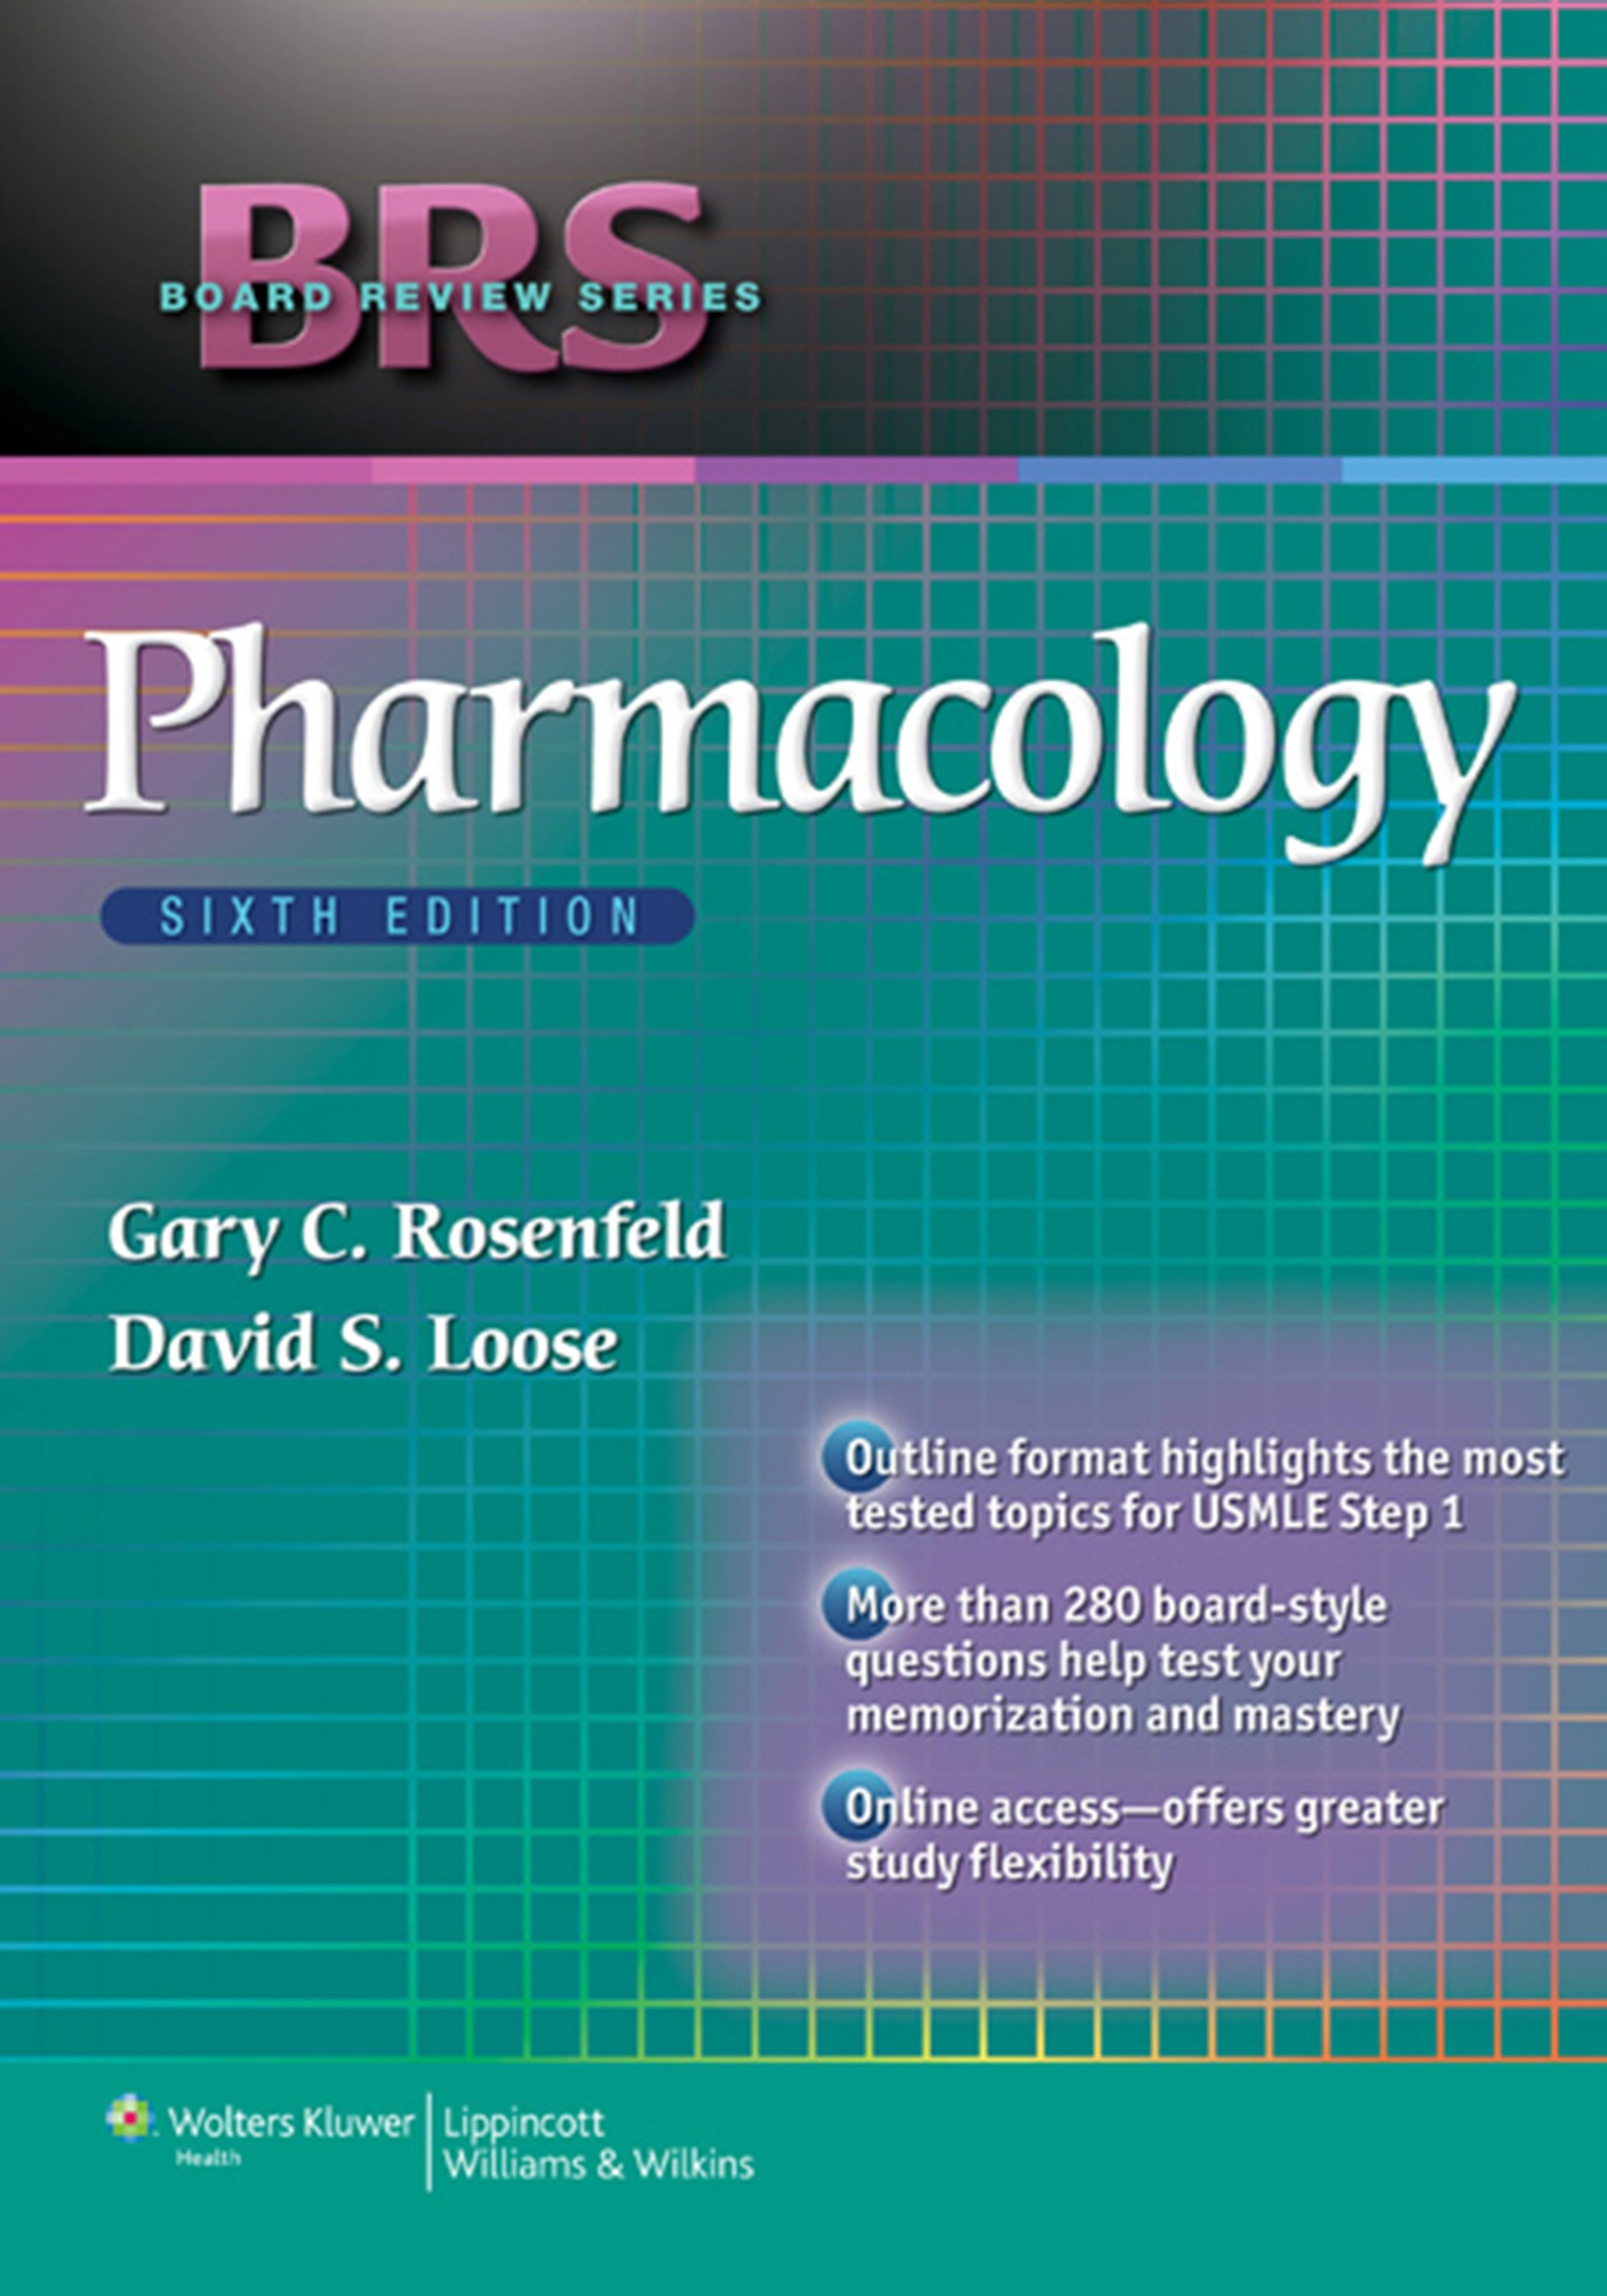 Brs pharmacology 6th edition pdf pinterest pharmacology books download the book brs pharmacology 6th edition pdf for freetable of contents 1 general principles of drug action i doseresponse relationships fandeluxe Choice Image